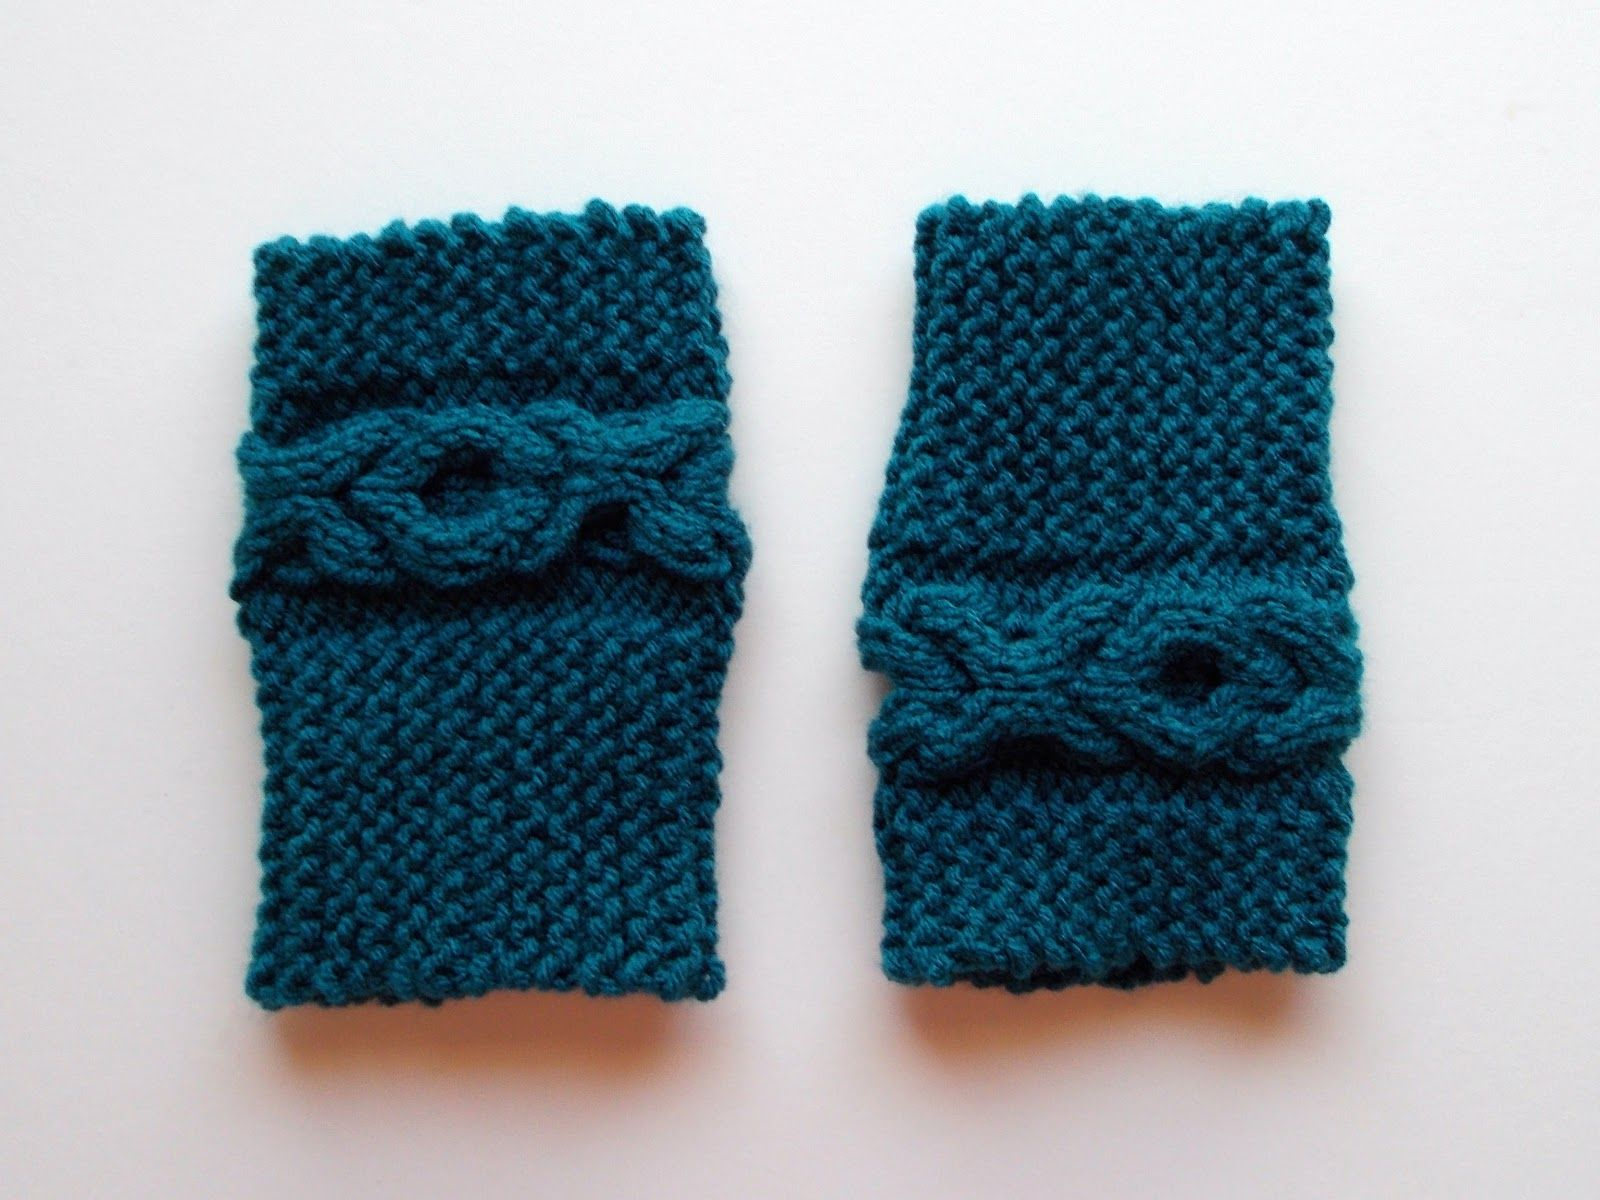 Picture of cable boot cuffs knitting pattern gratis stickmnster picture of cable boot cuffs knitting pattern bankloansurffo Choice Image